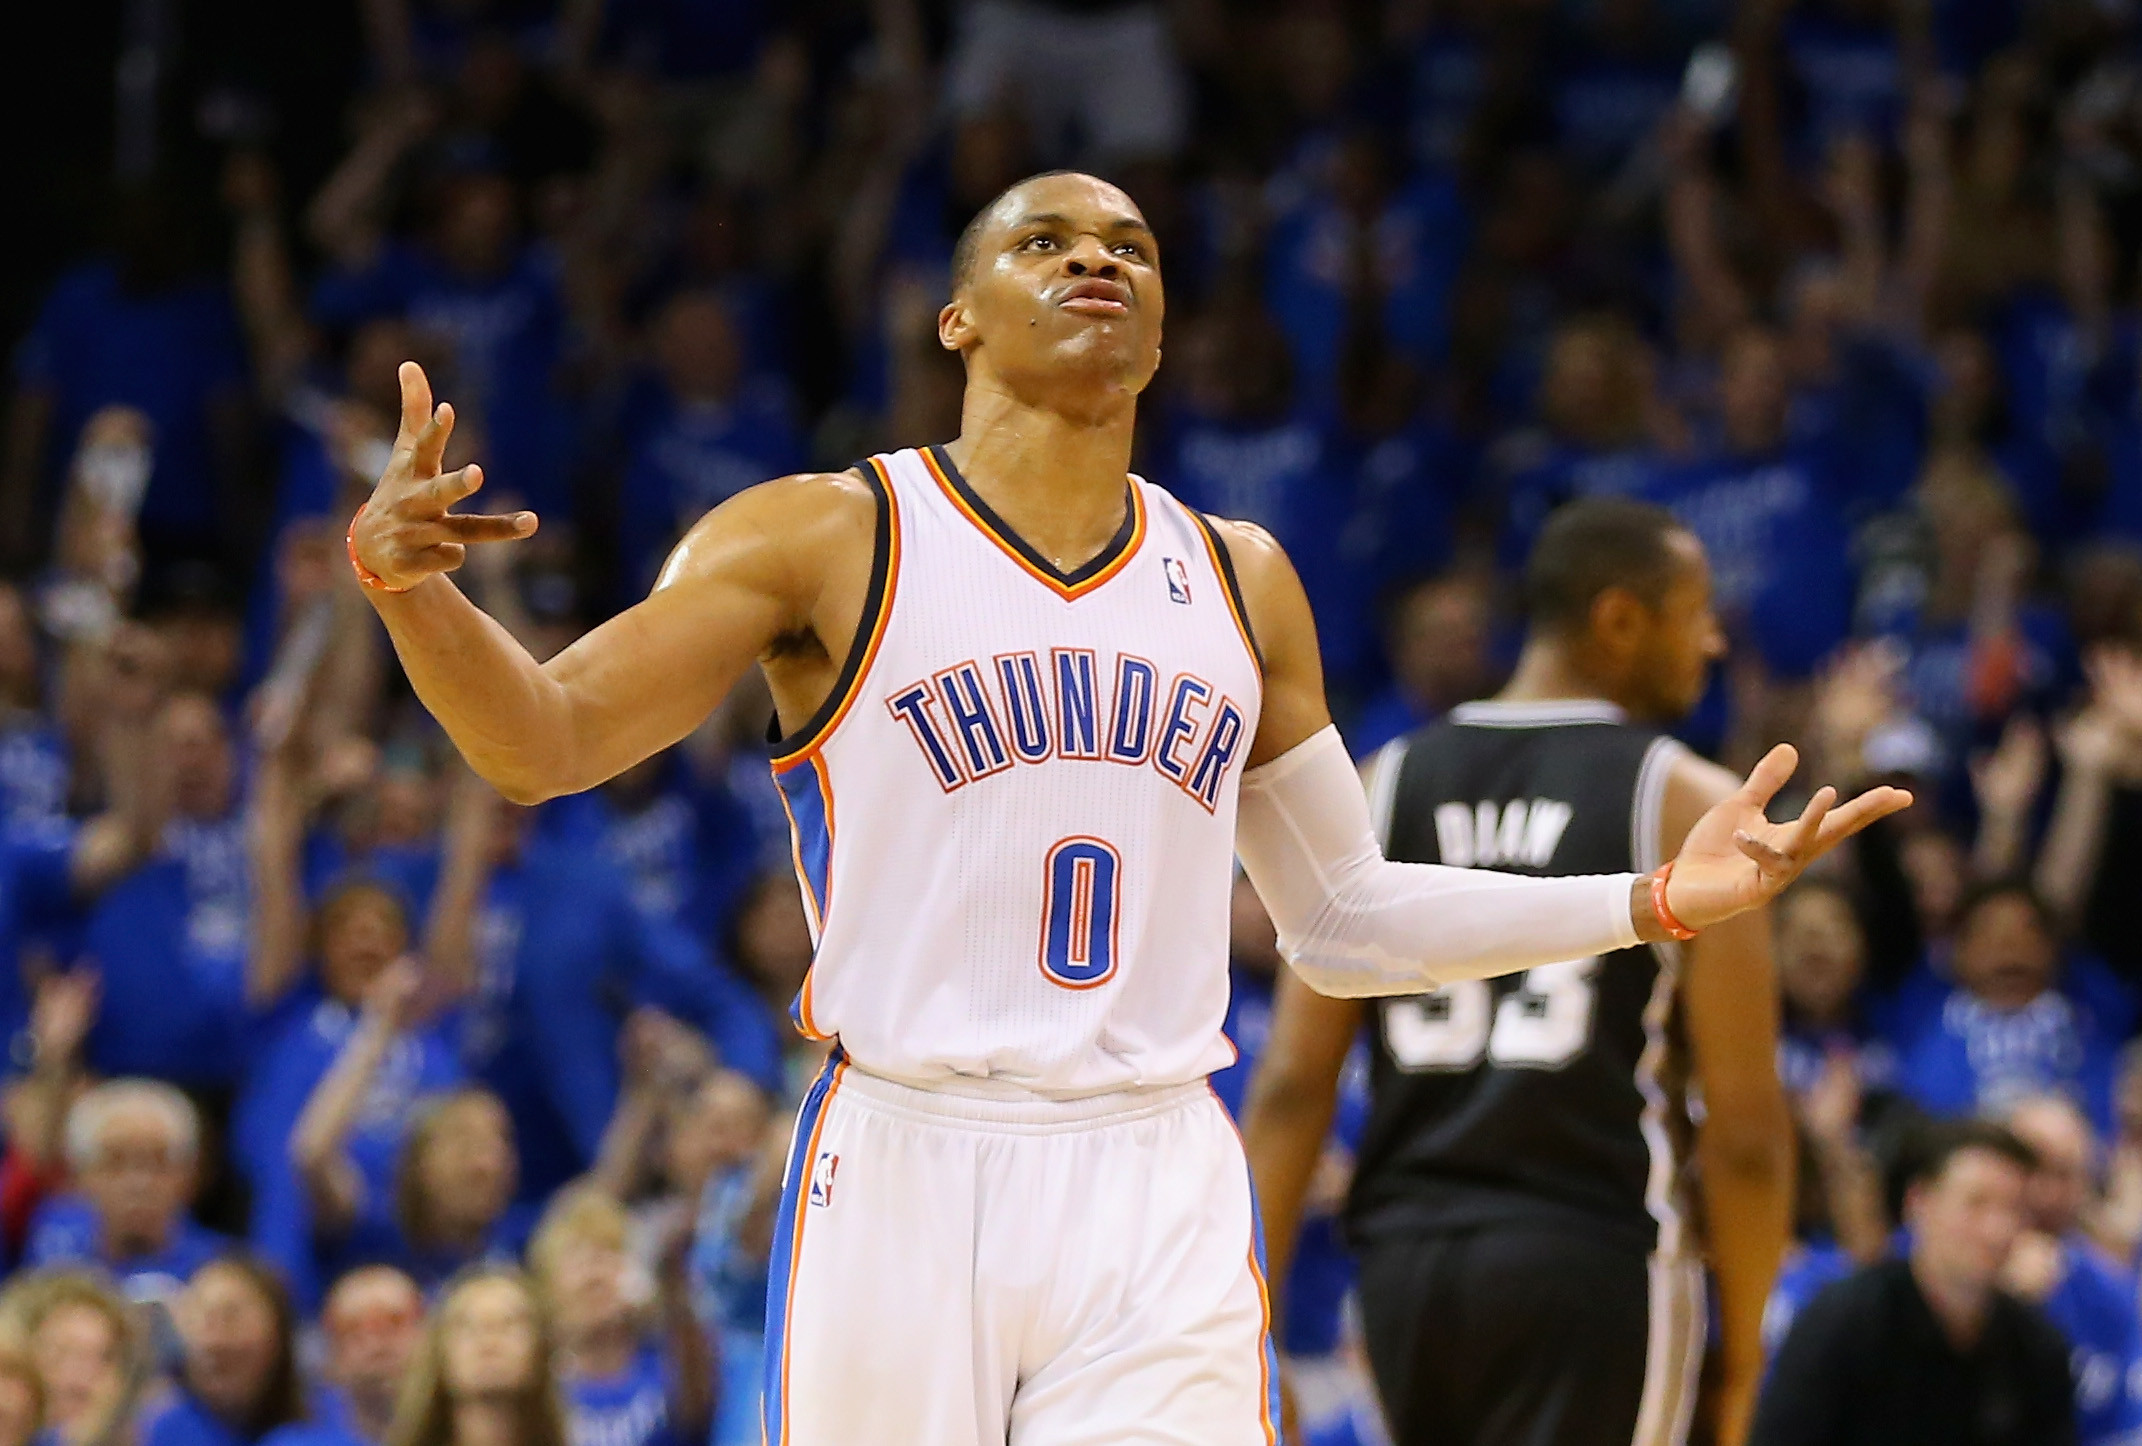 russell westbrook | There goes Russell Westbrook, turning an easy pass into  a turnover.